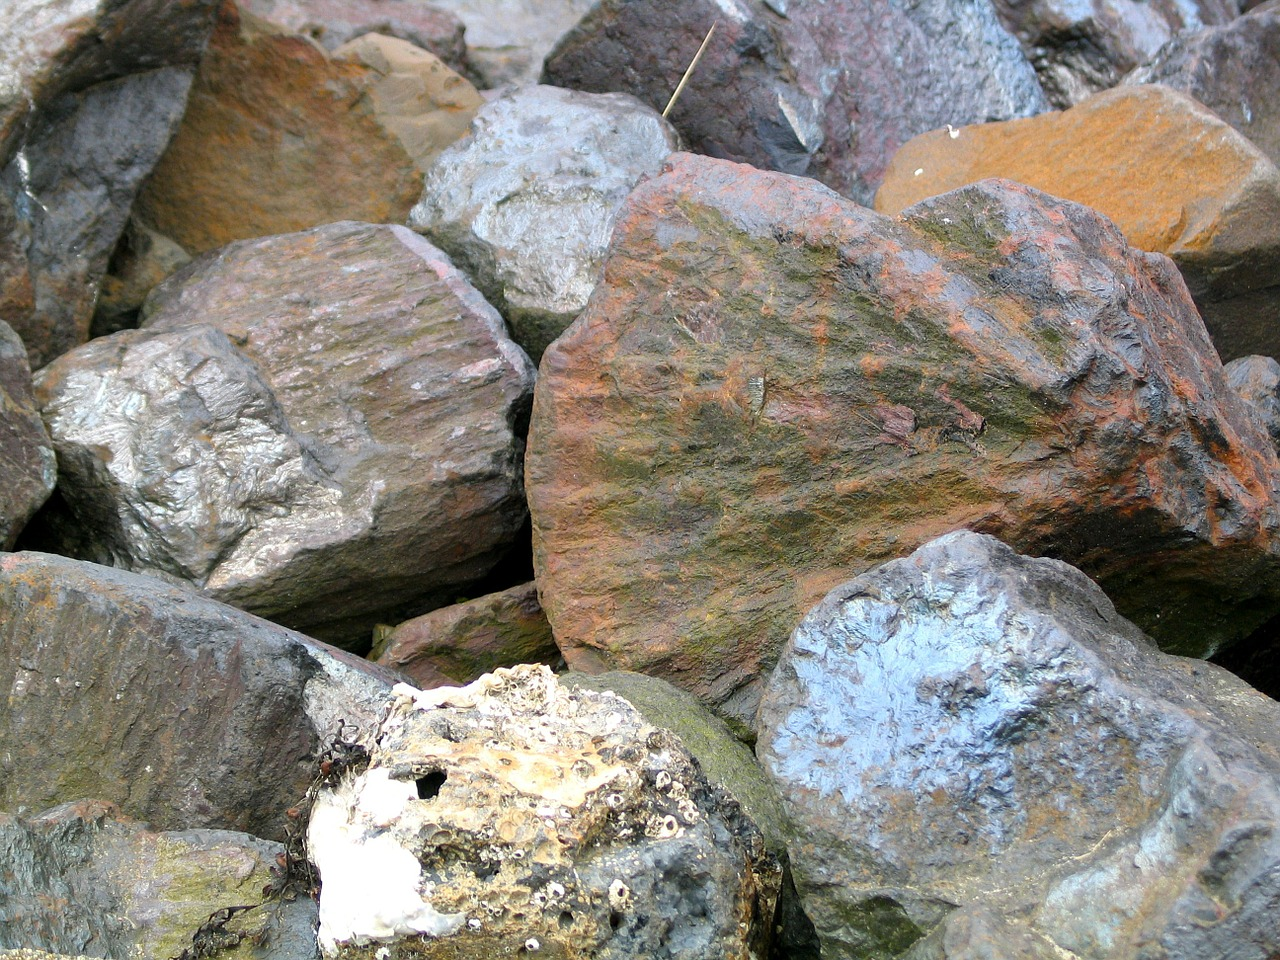 stones cairn nature free photo